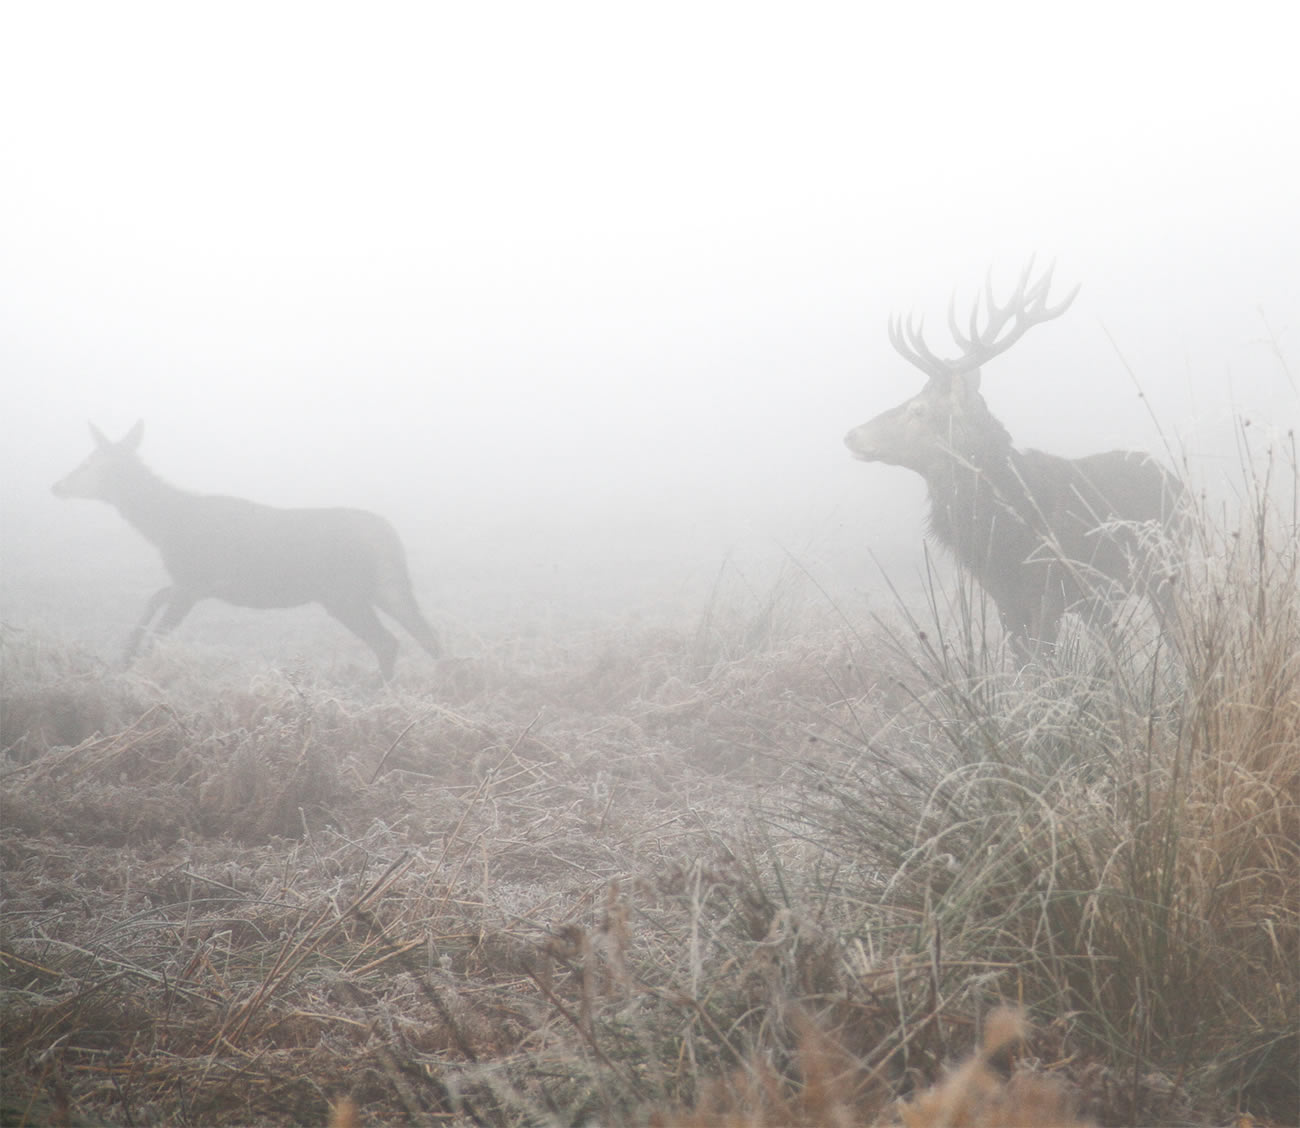 deers running photography by Sirli Raitma